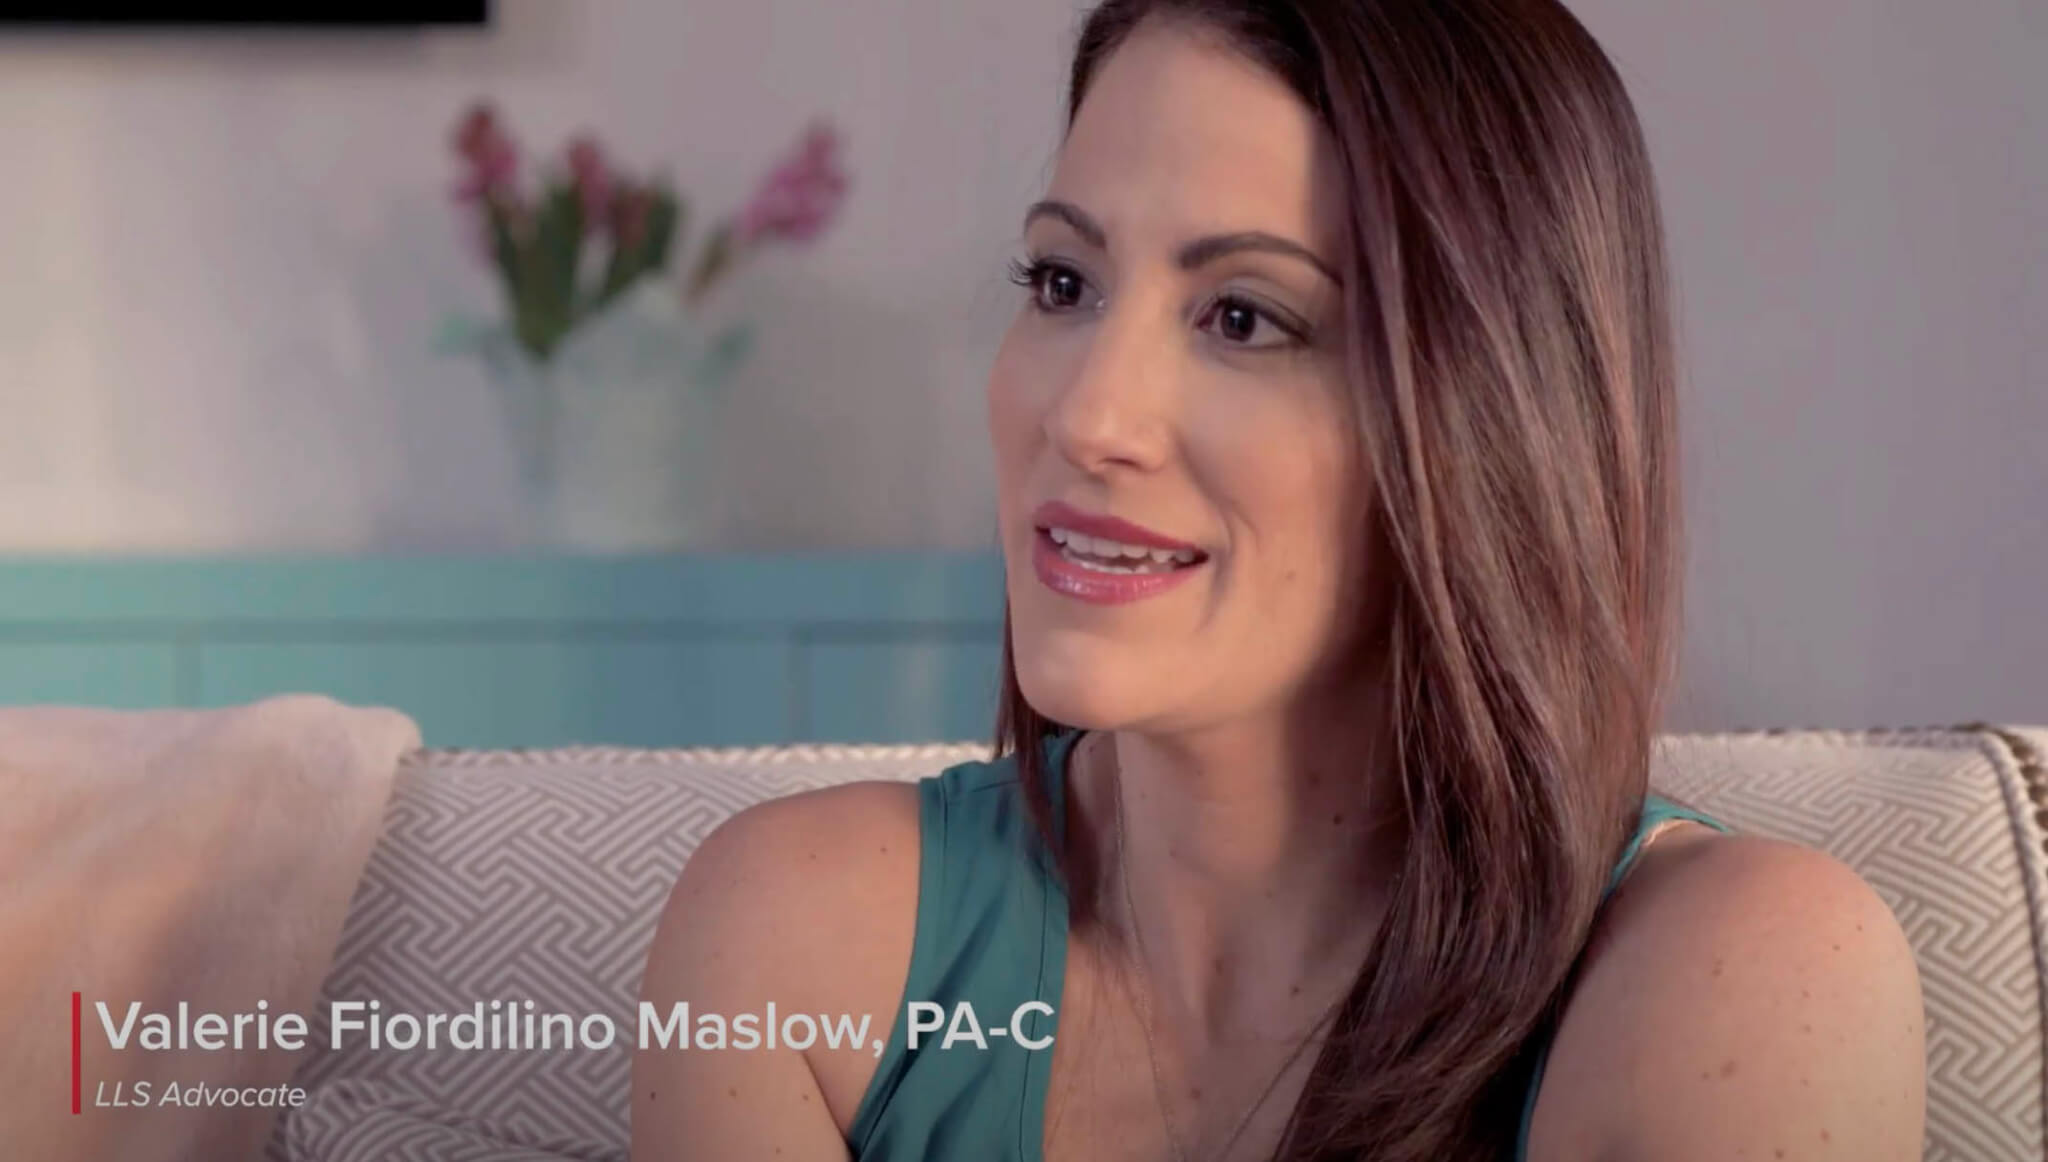 Beating Cancer Is In Our Blood: Valerie Fiordilino Maslow